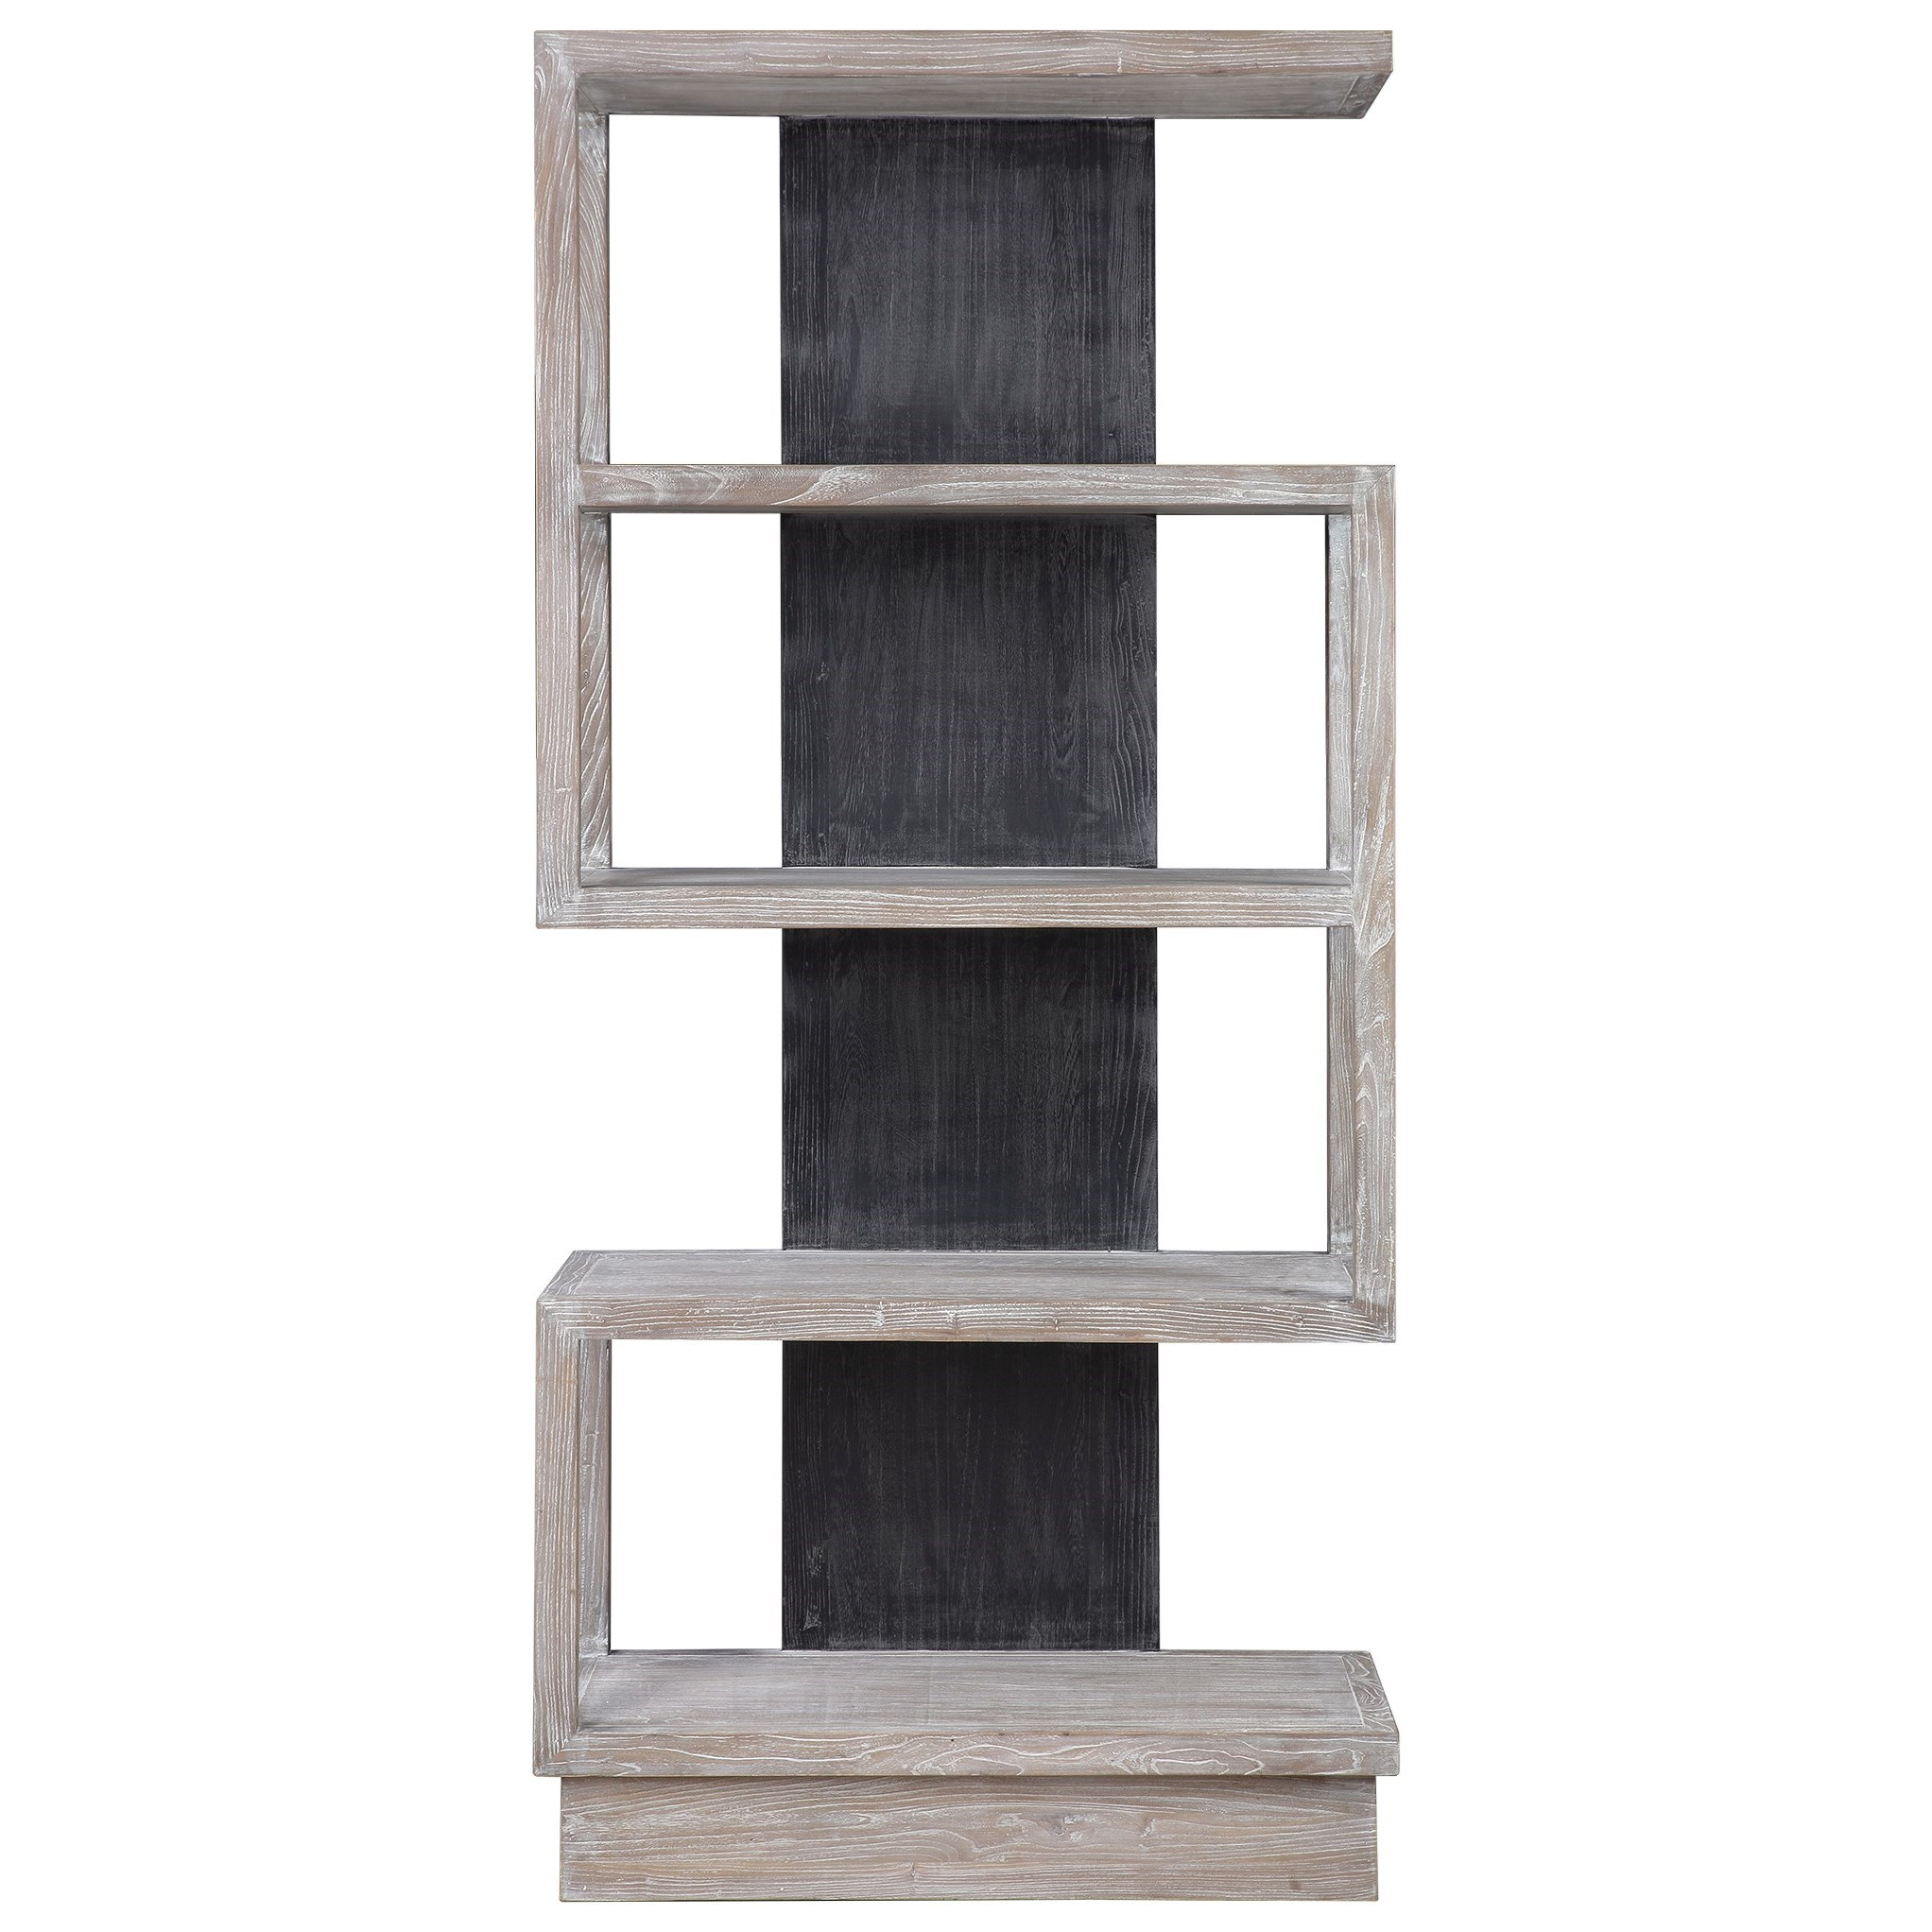 Accent Furniture - Bookcases Nicasia Modern Etagere by Uttermost at Reid's Furniture